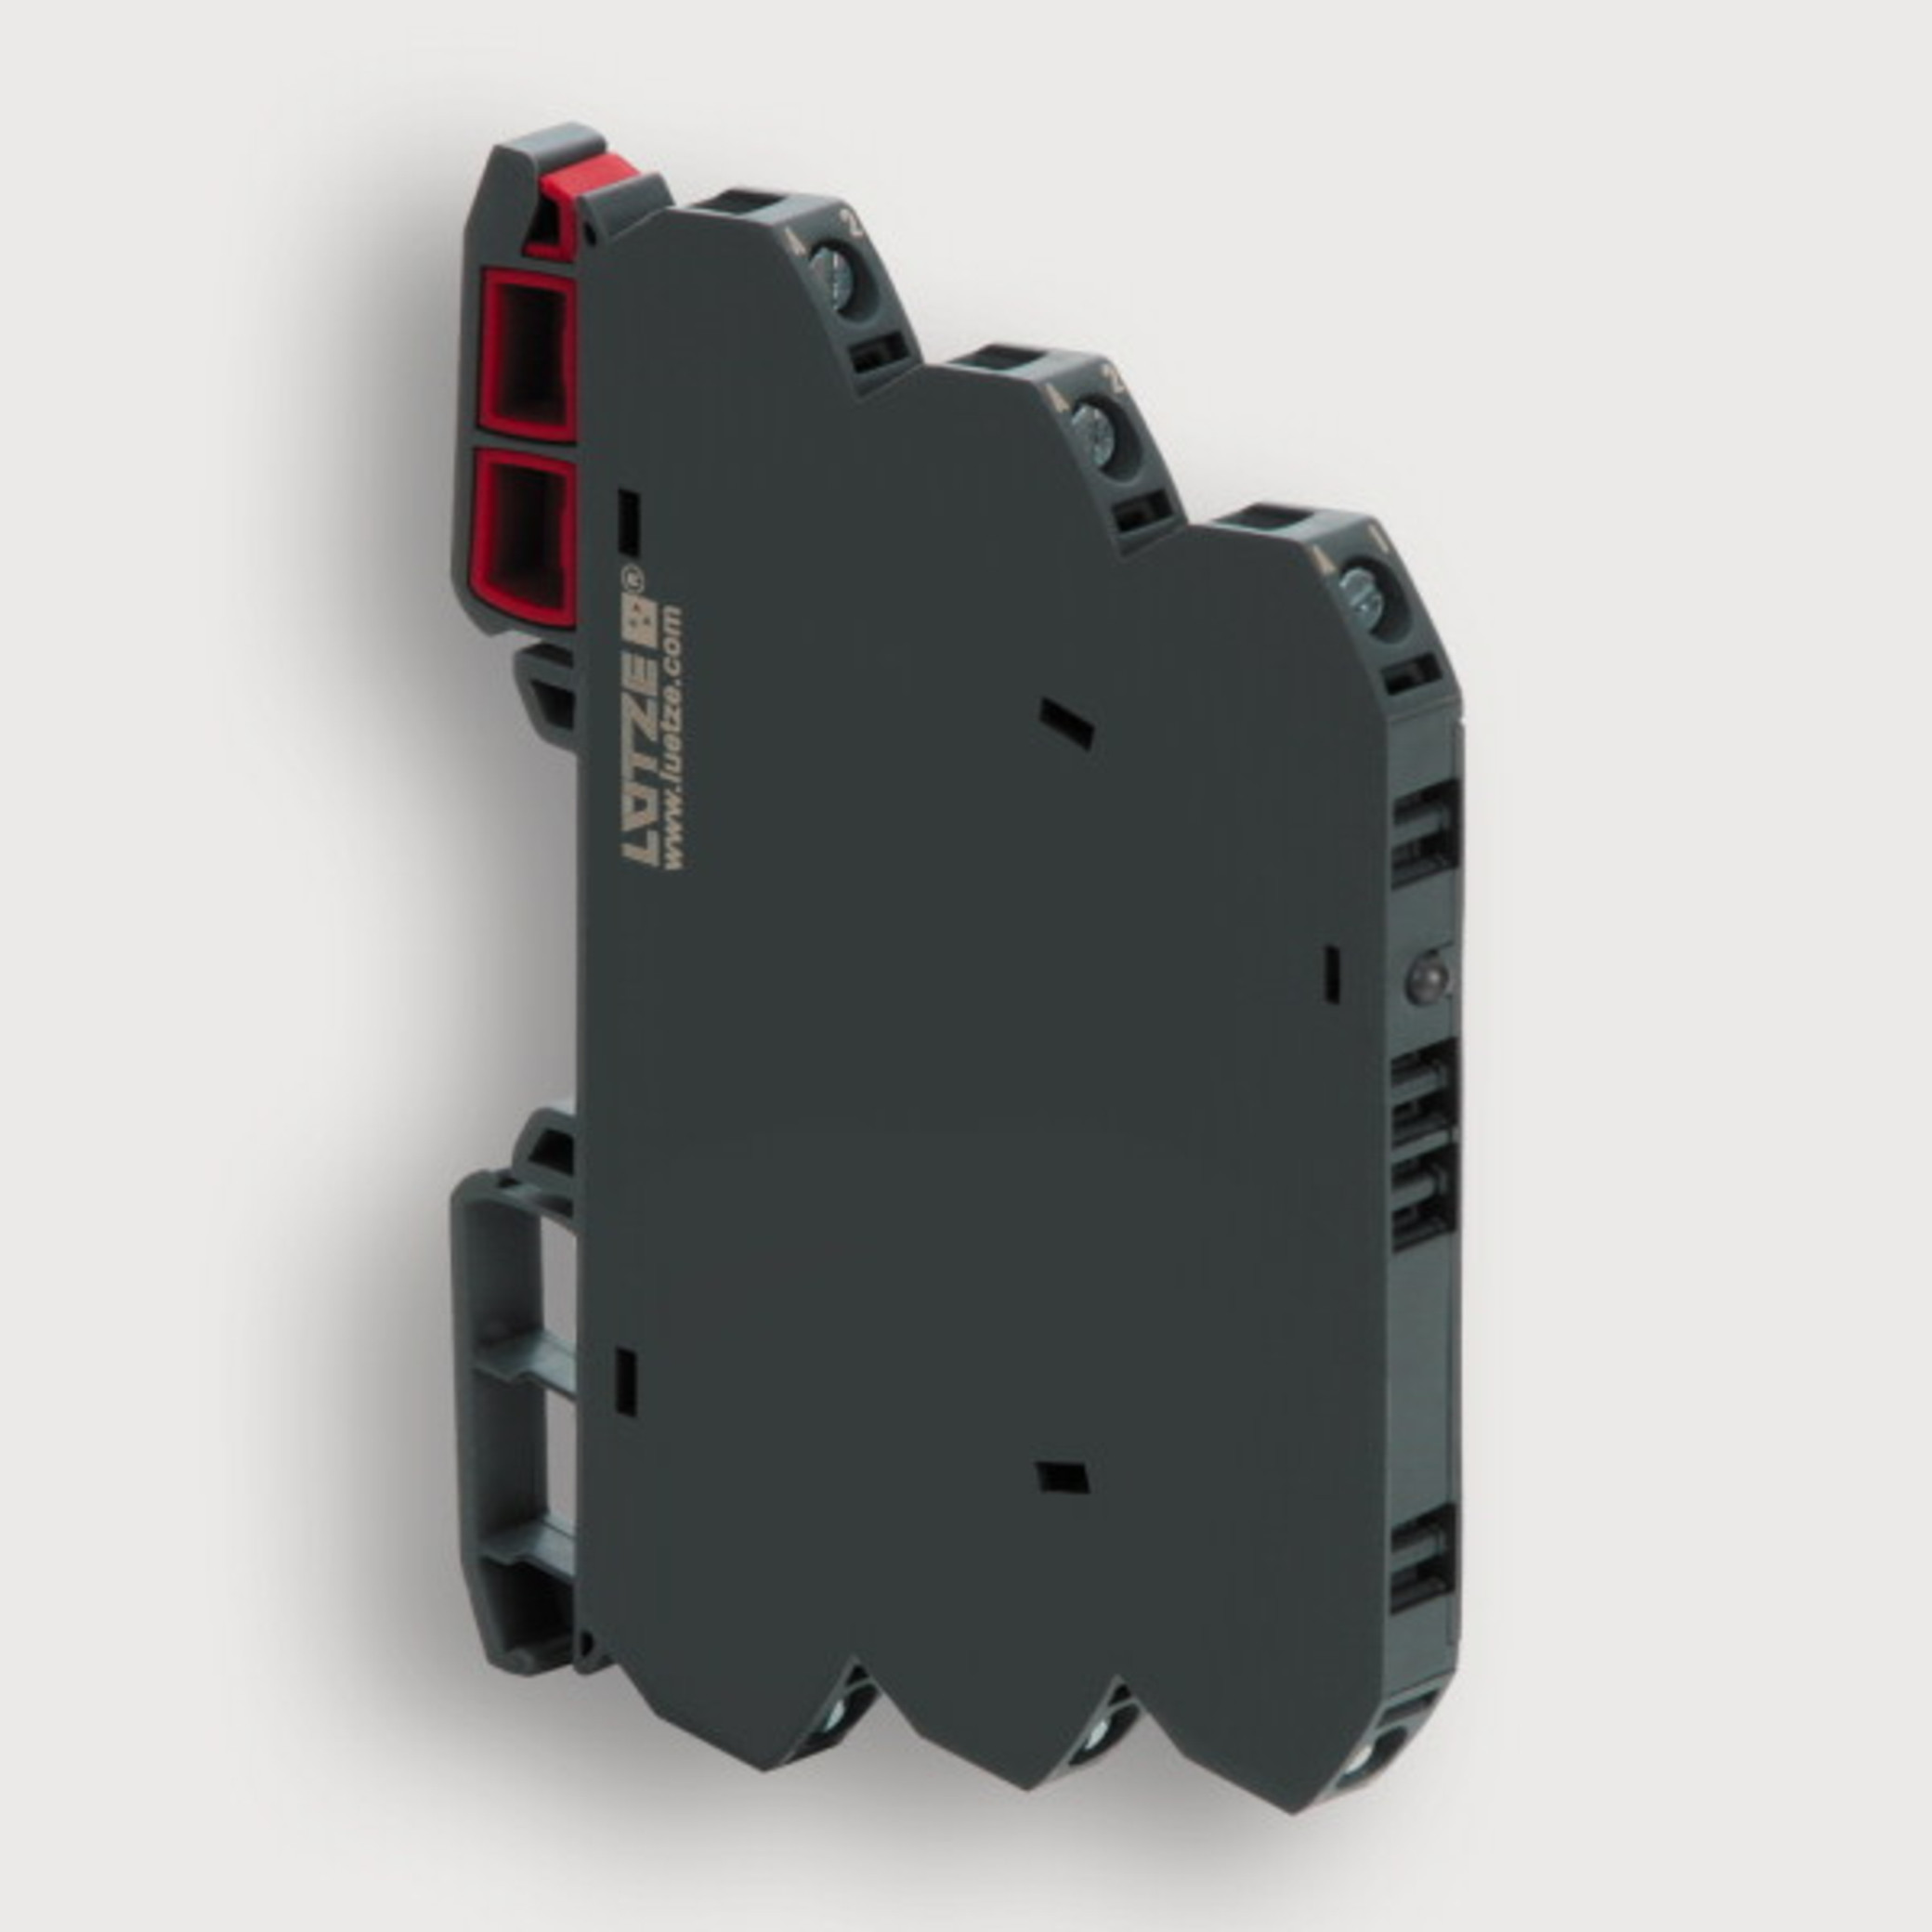 764020 0330 lcis solid state relay